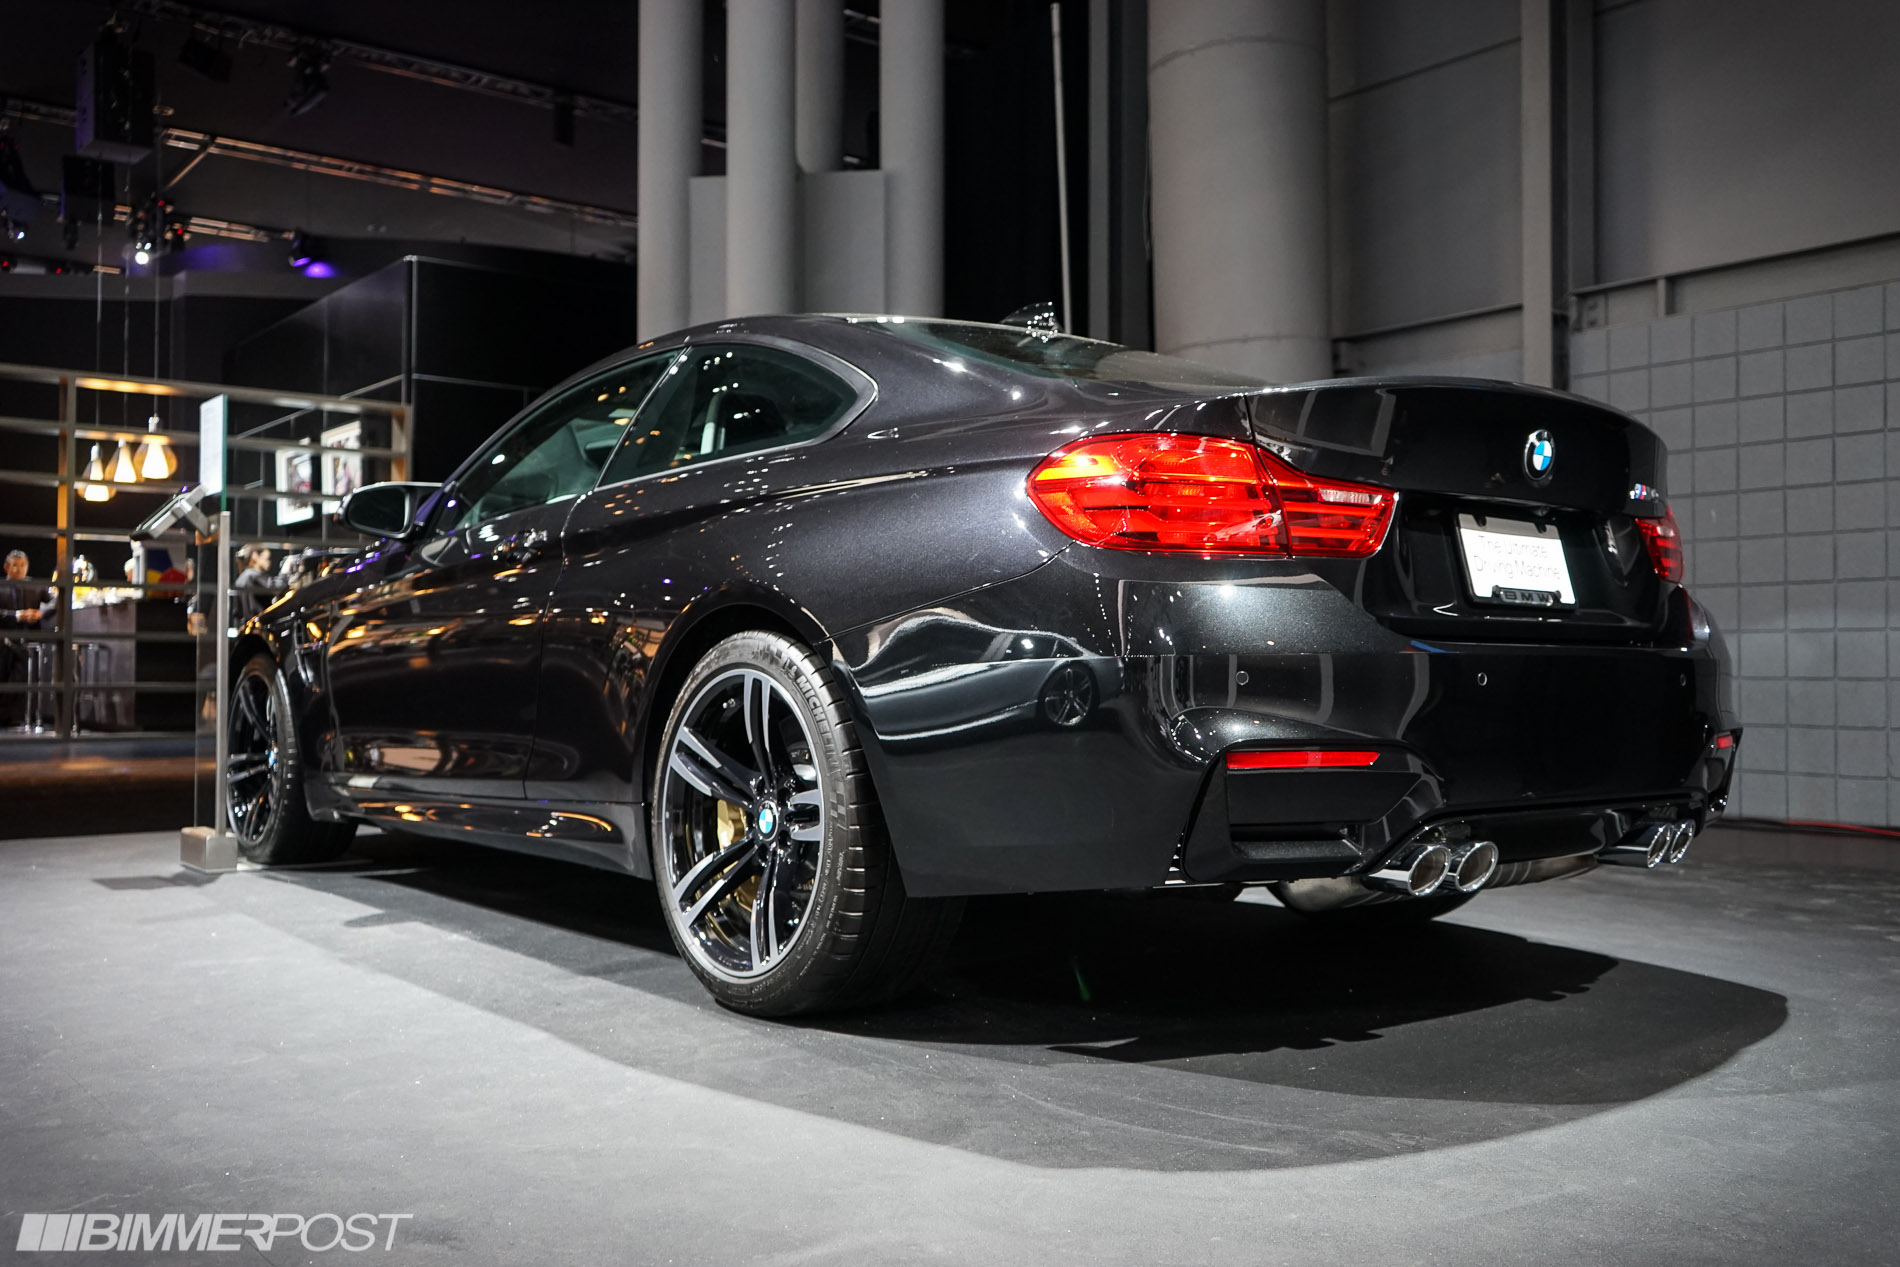 2014 nyias bmw m4 f82 in black sapphire metallic. Black Bedroom Furniture Sets. Home Design Ideas